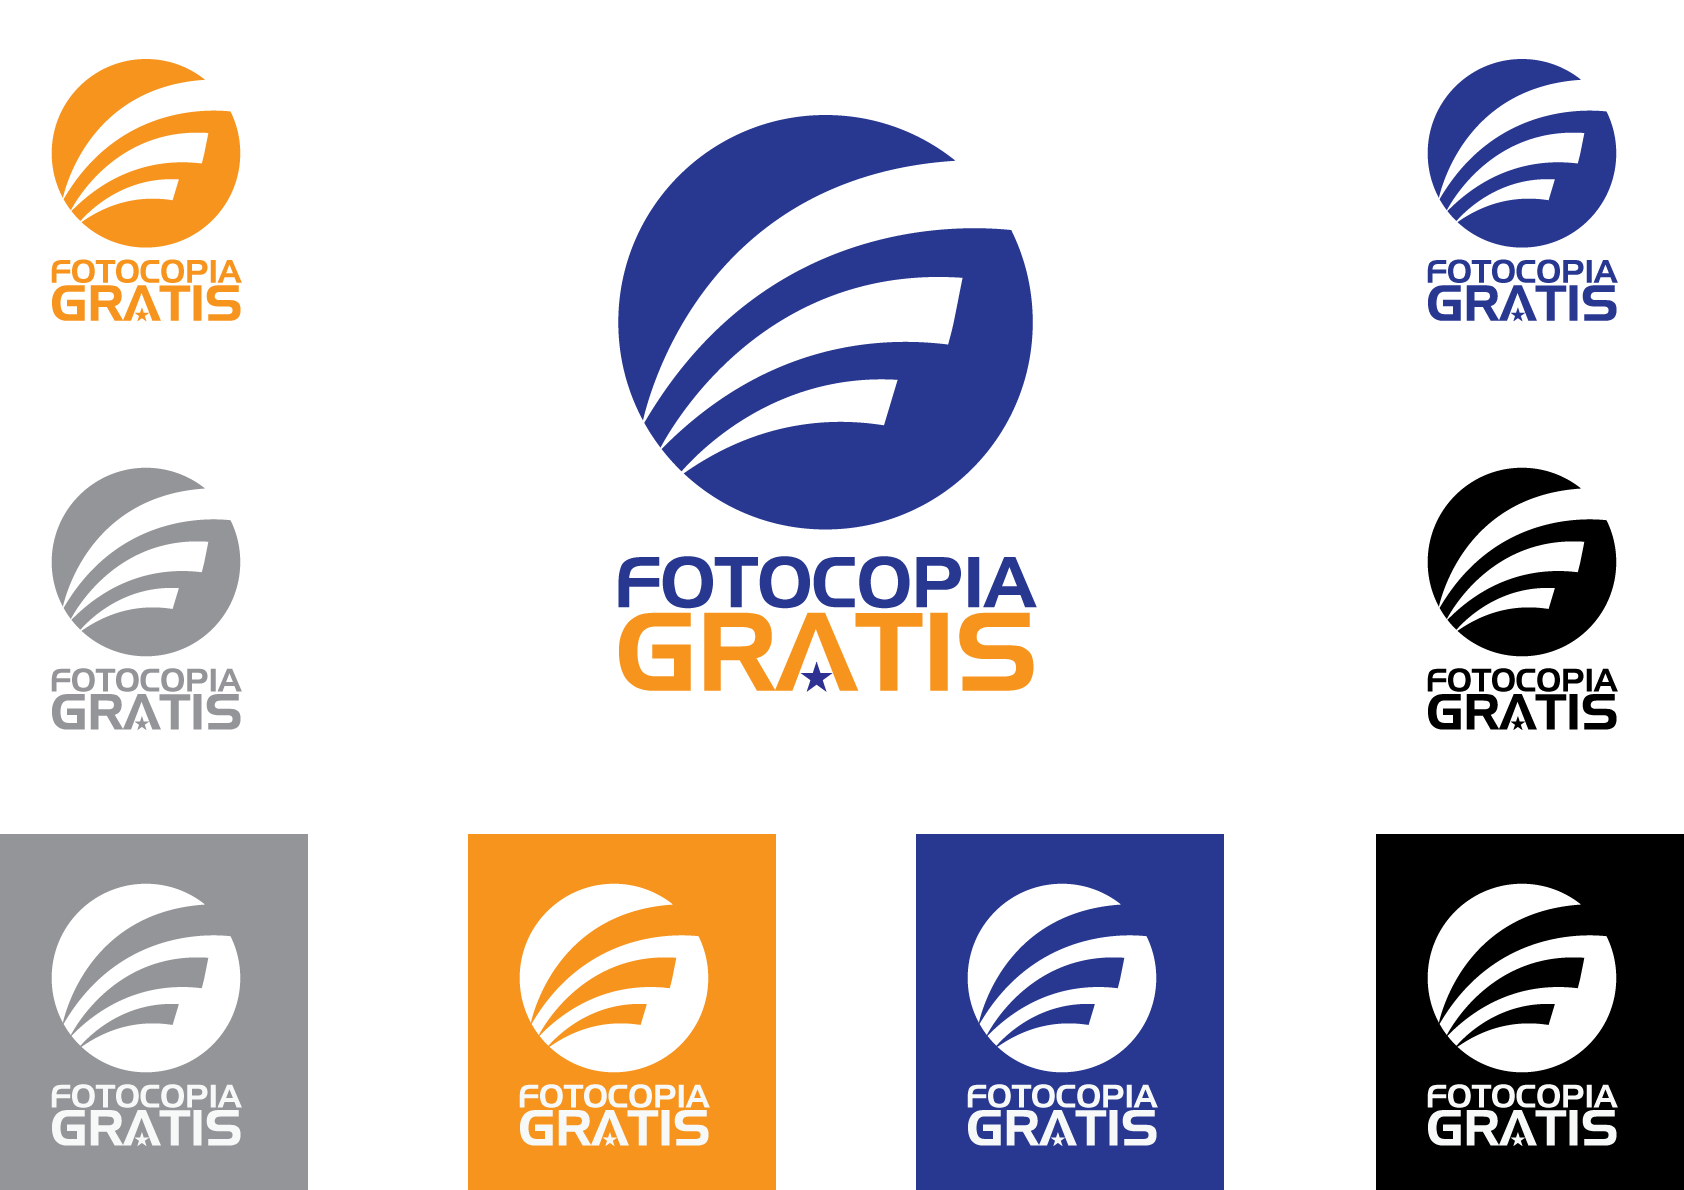 Logo Design by Severiano Fernandes - Entry No. 235 in the Logo Design Contest Inspiring Logo Design for Fotocopiagratis.